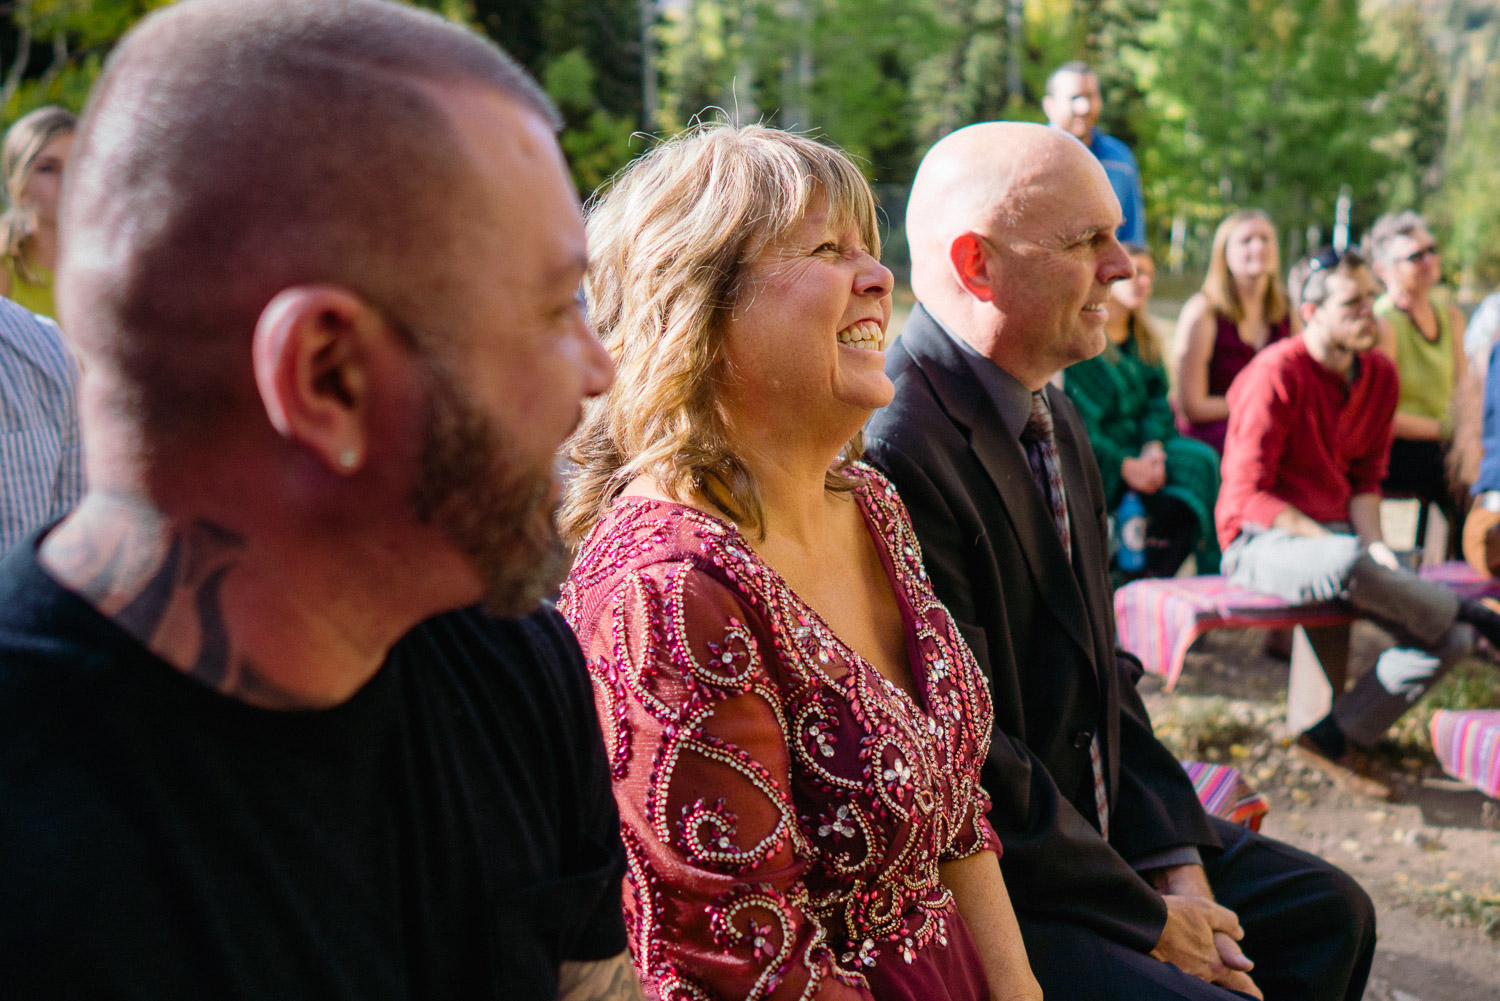 outdoor wedding guests smiling